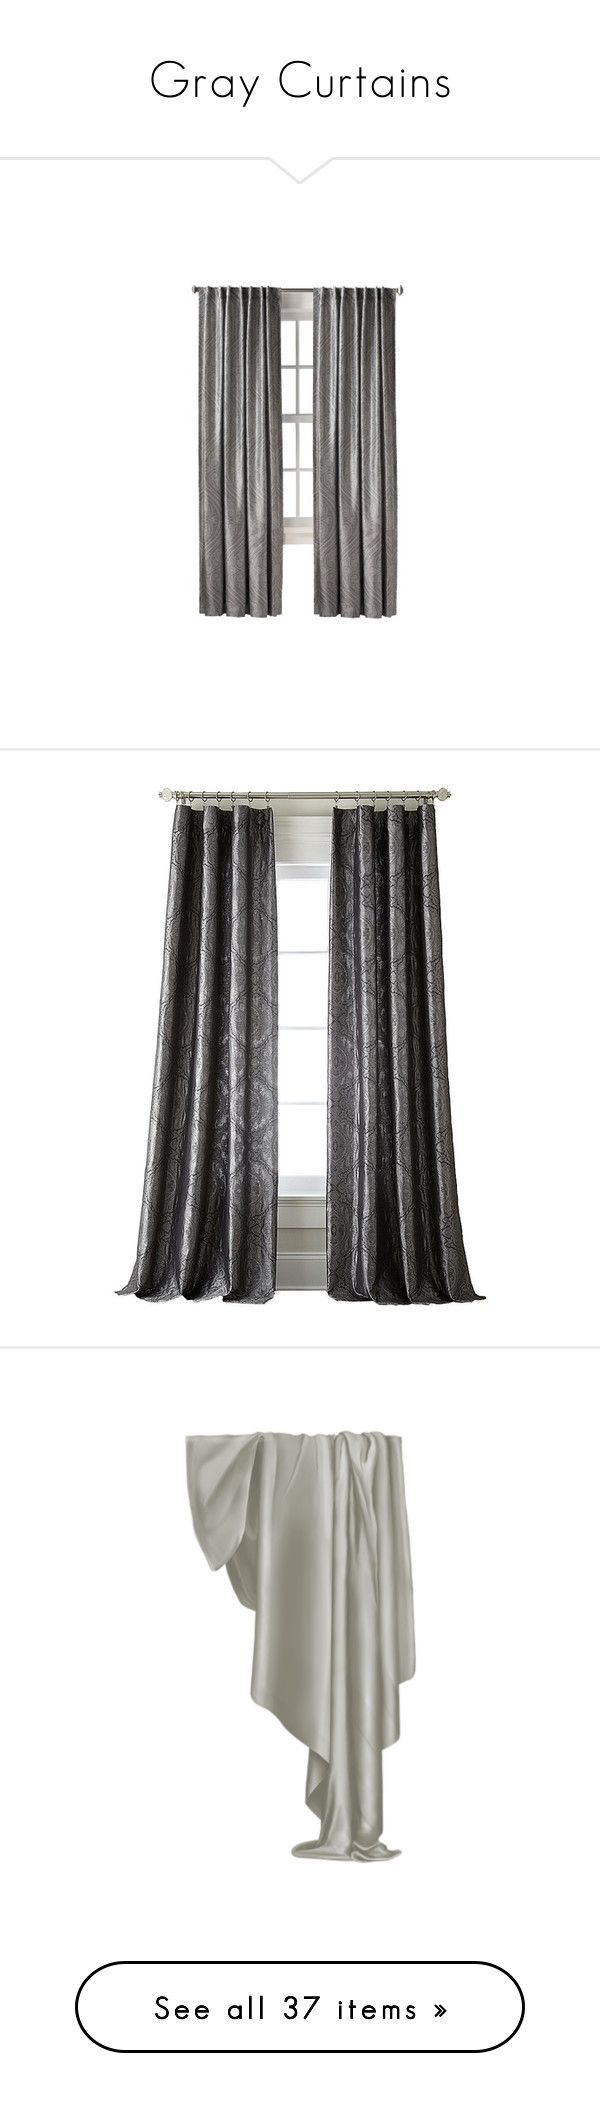 """Gray Curtains"" by lailoooo ❤ liked on Polyvore featuring home, home decor, window treatments, curtains, gray curtain panels, target curtain panels, grey curtains, gray home decor, ogee curtains and tab curtains"